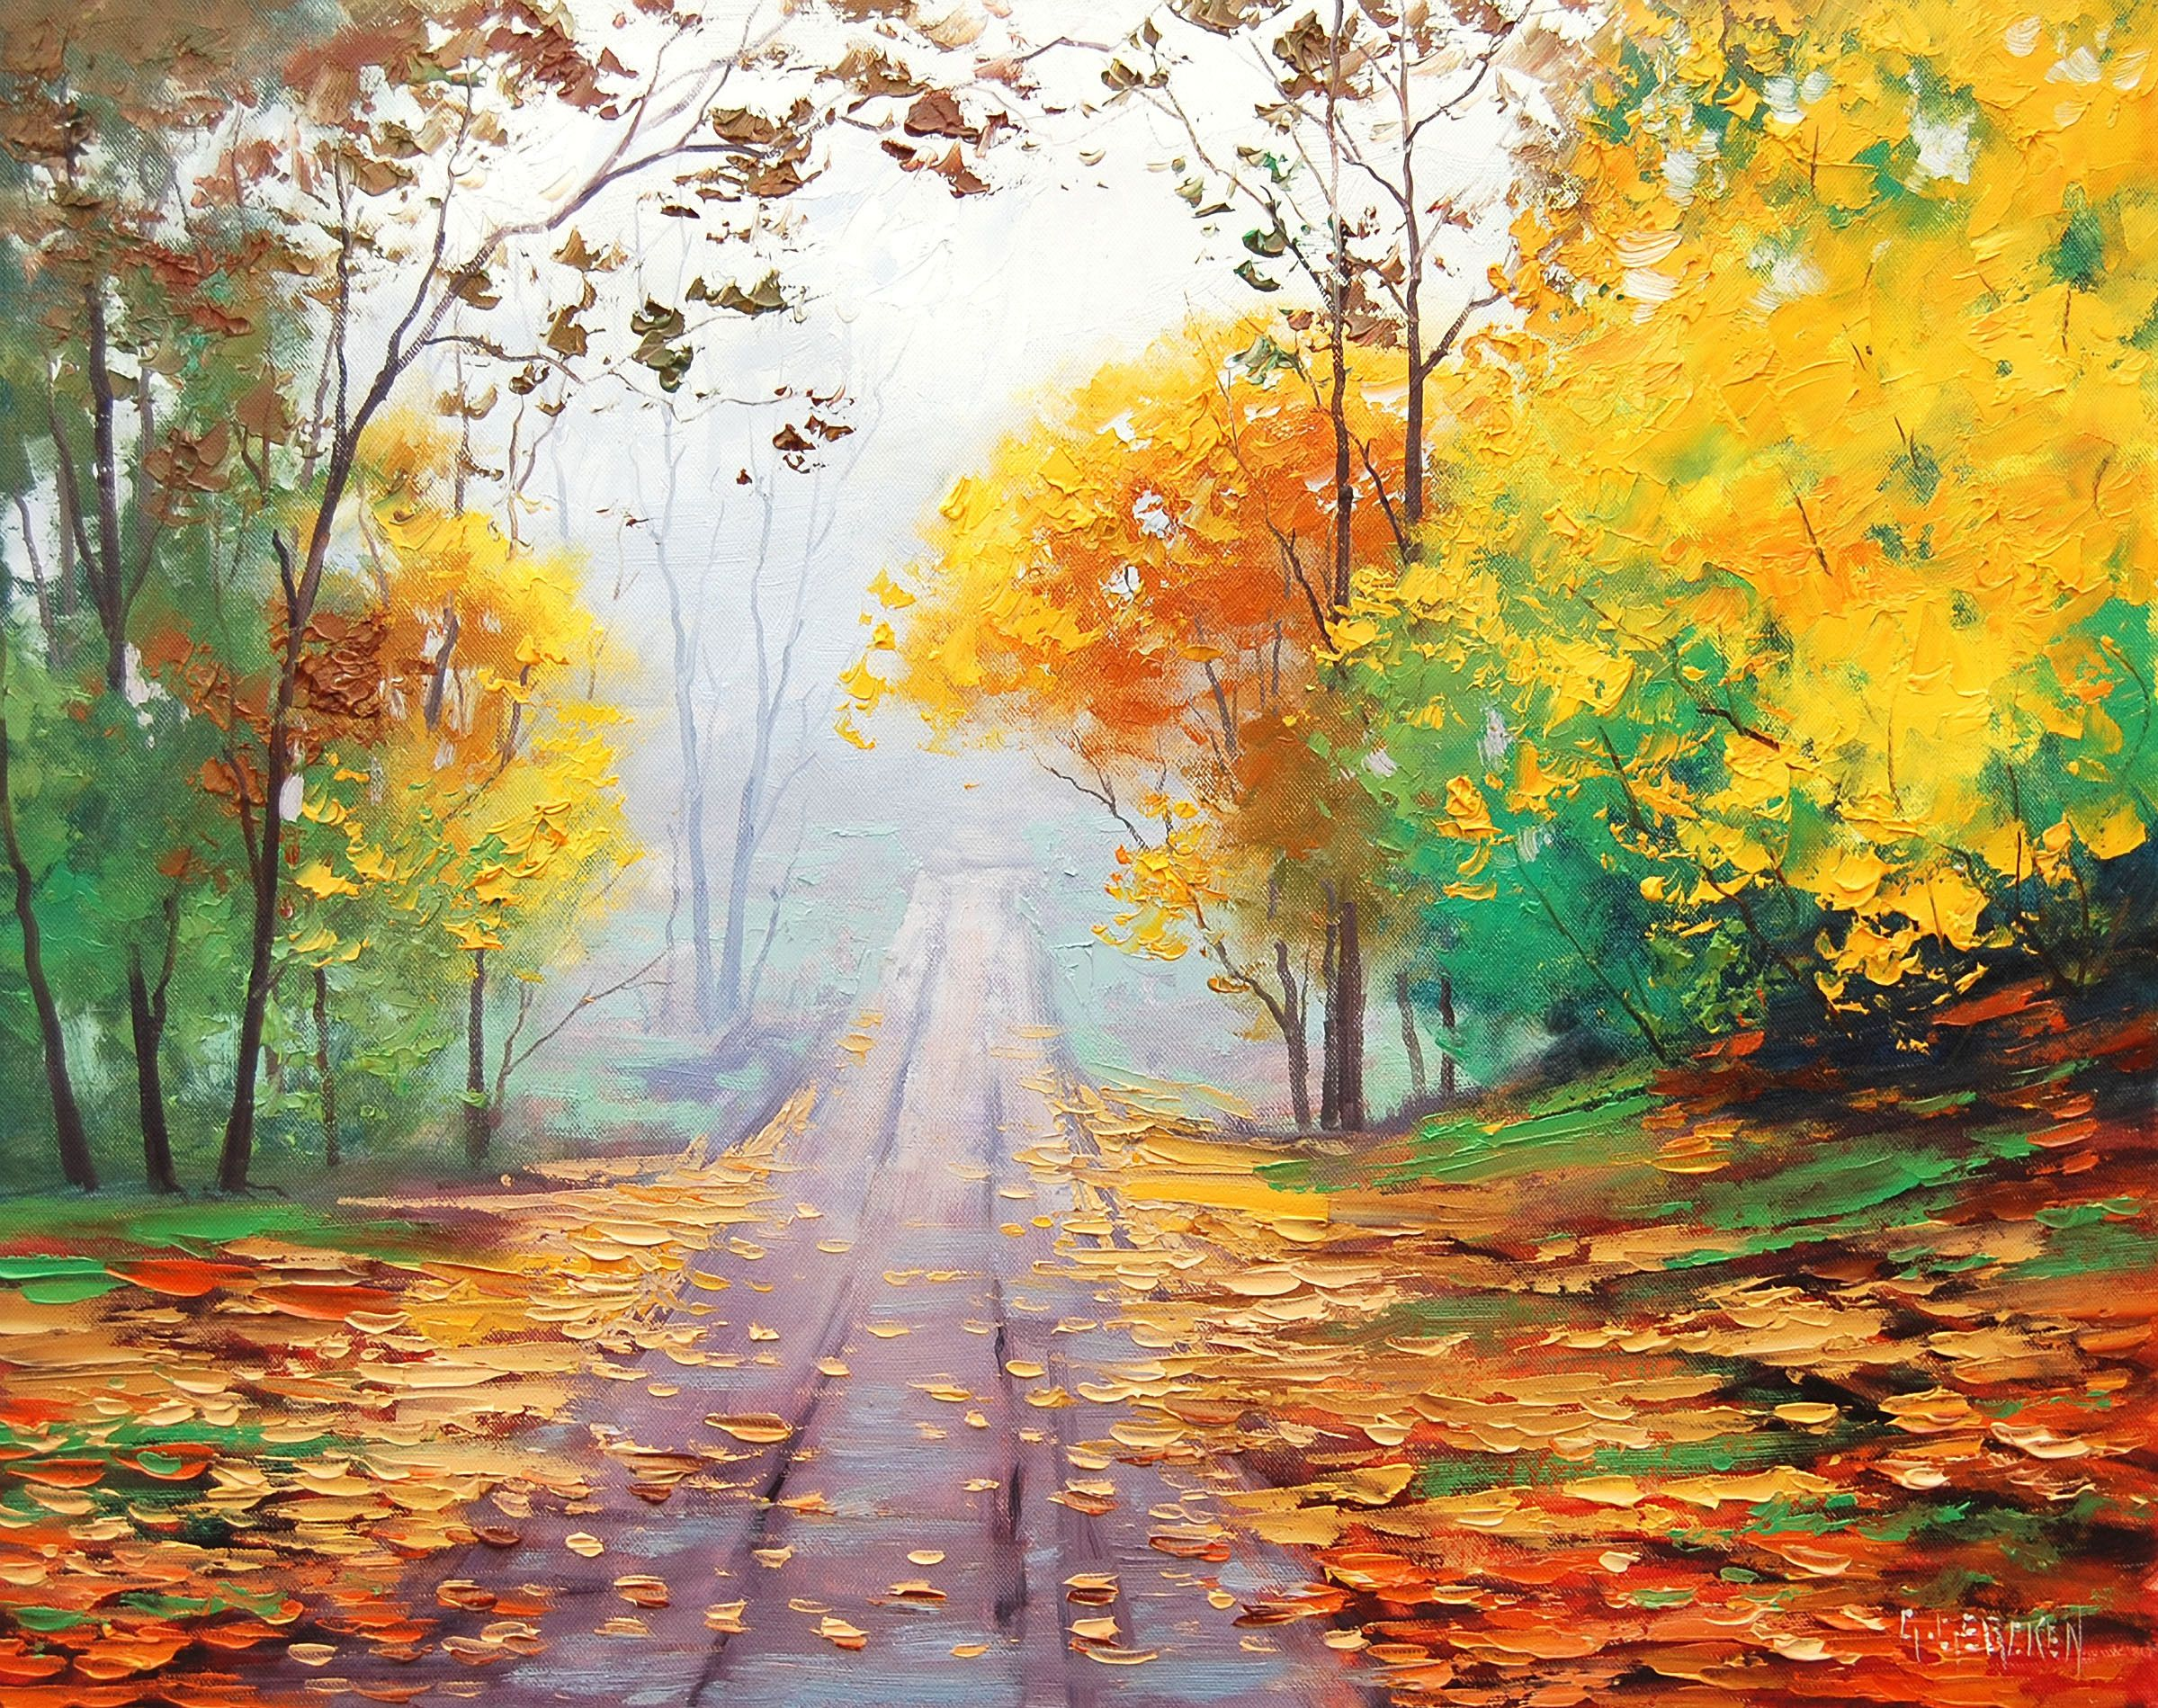 Wallpapers For > Oil Painting Wallpapers Autumn painting